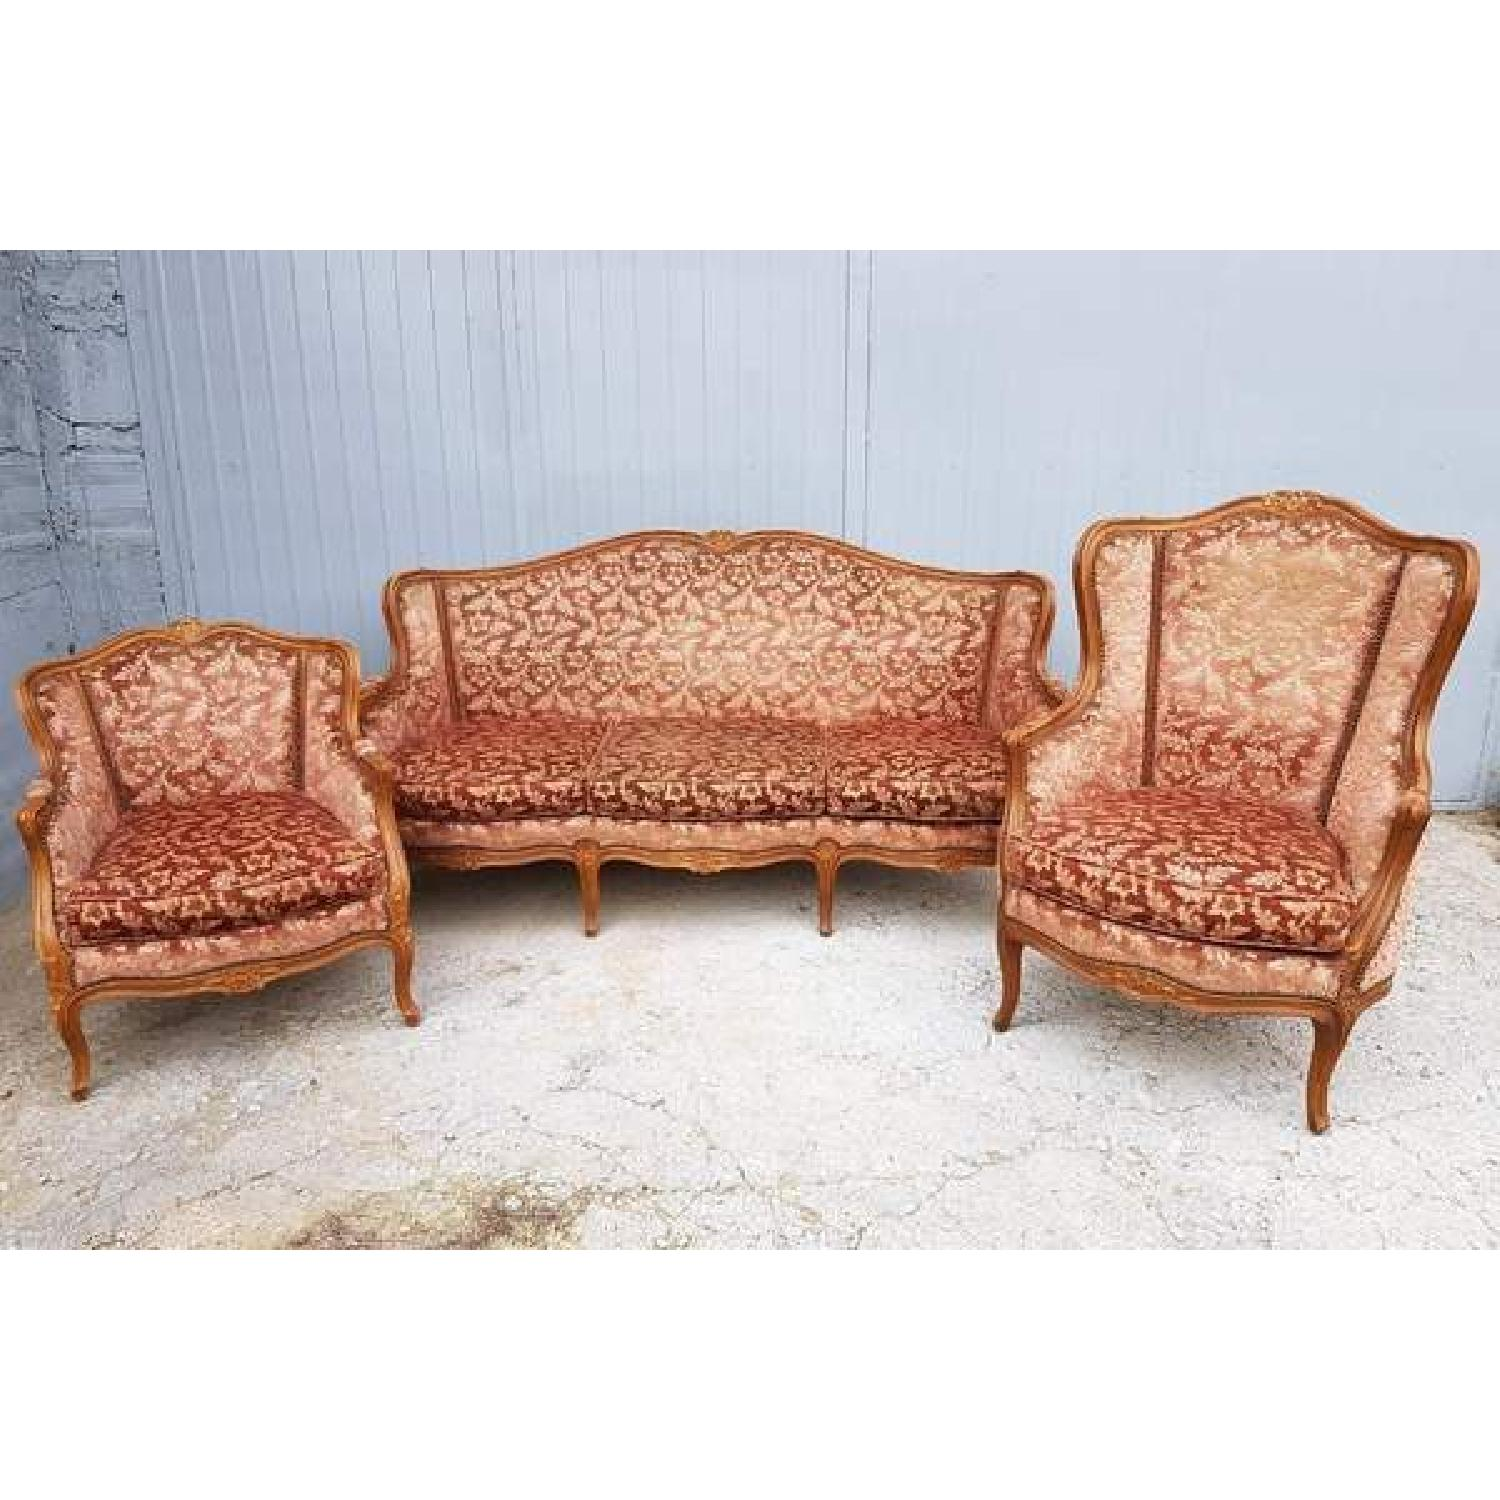 Canape Sofa Antique Louis Xv Style Carved Parlor Canape Sofa 2 Chairs